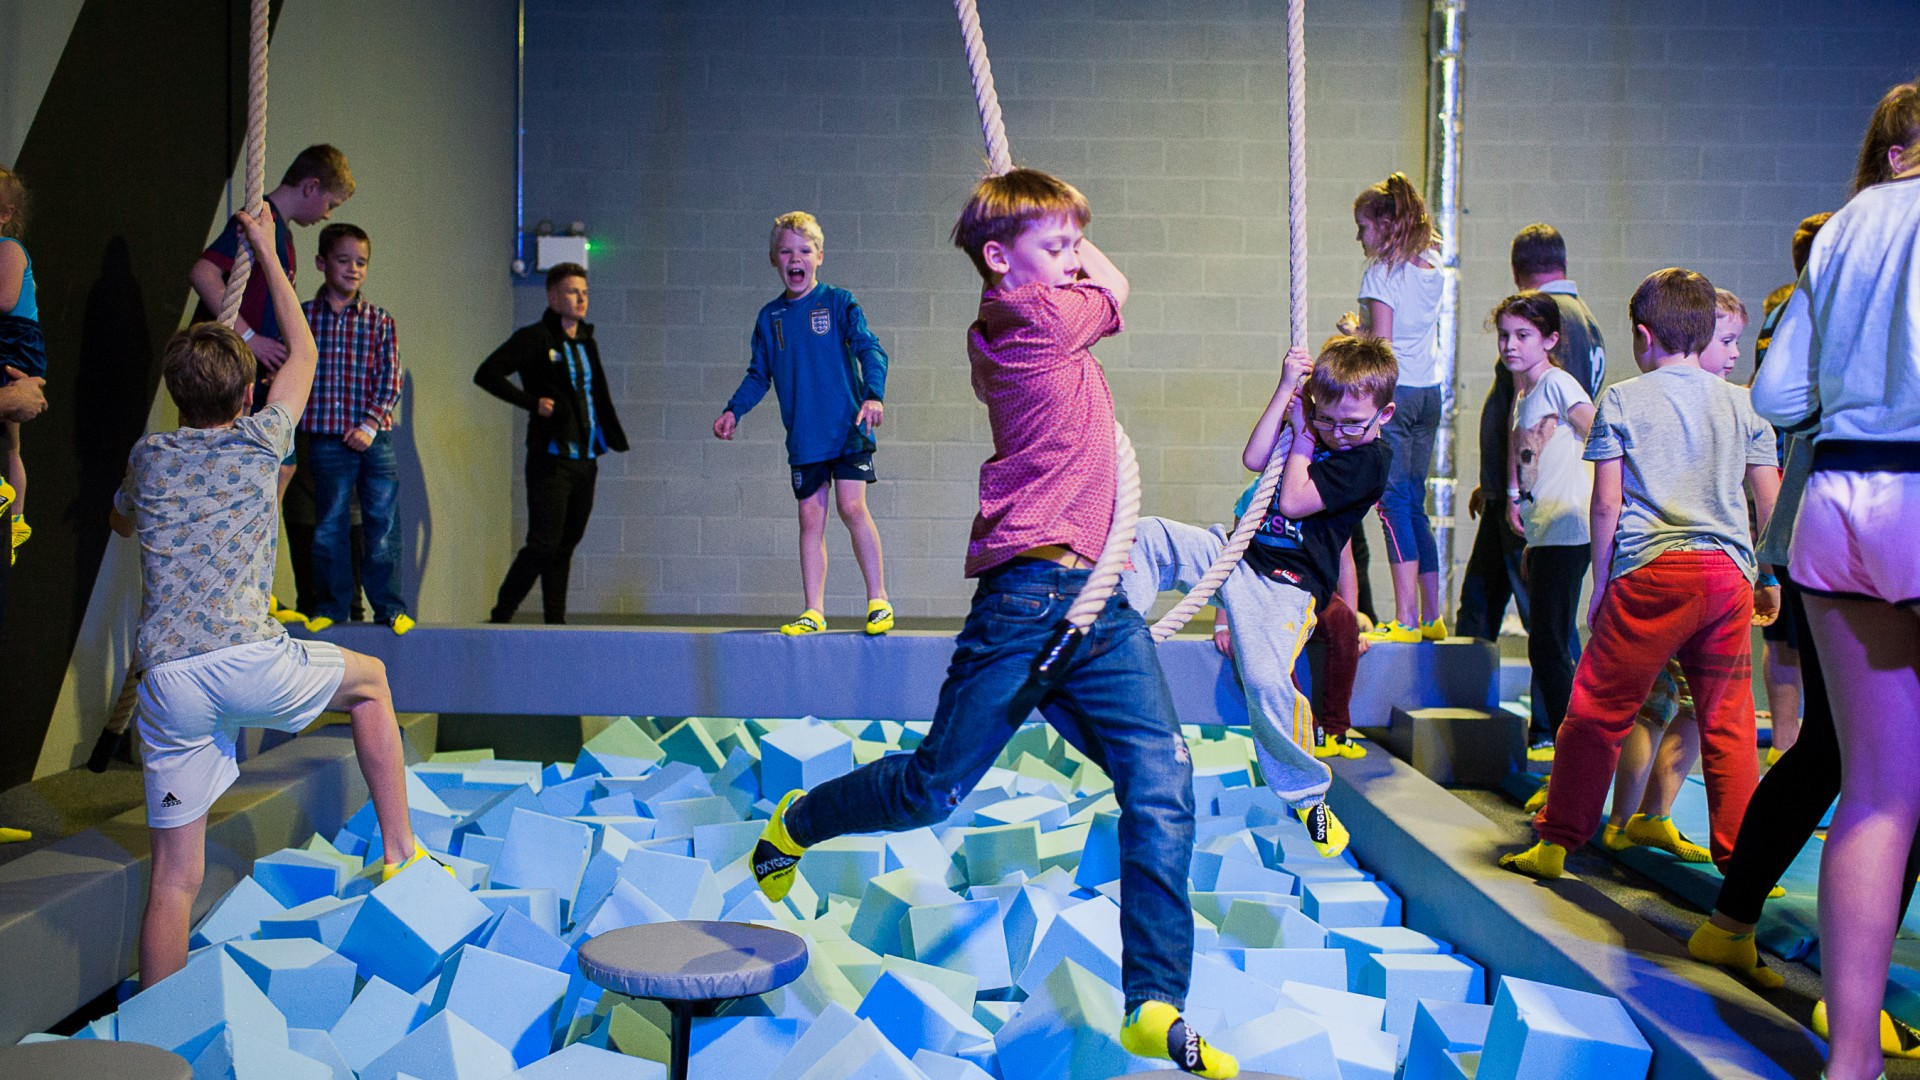 boy swinging on rope in the obstacle course at Oxygen Freejumping trampoline park